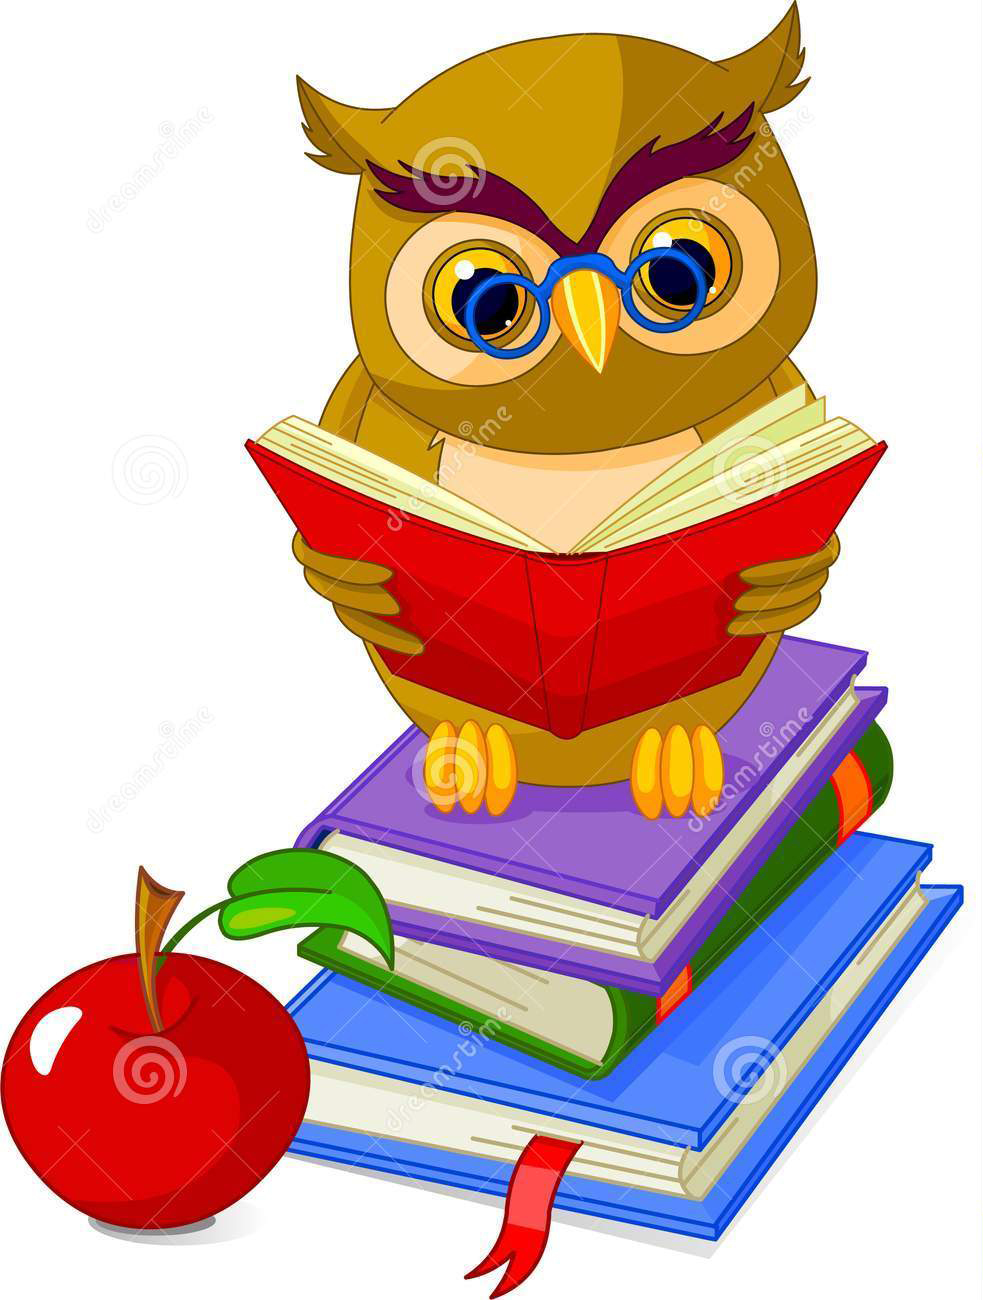 wise-owl-sitting-pile-book-14925931